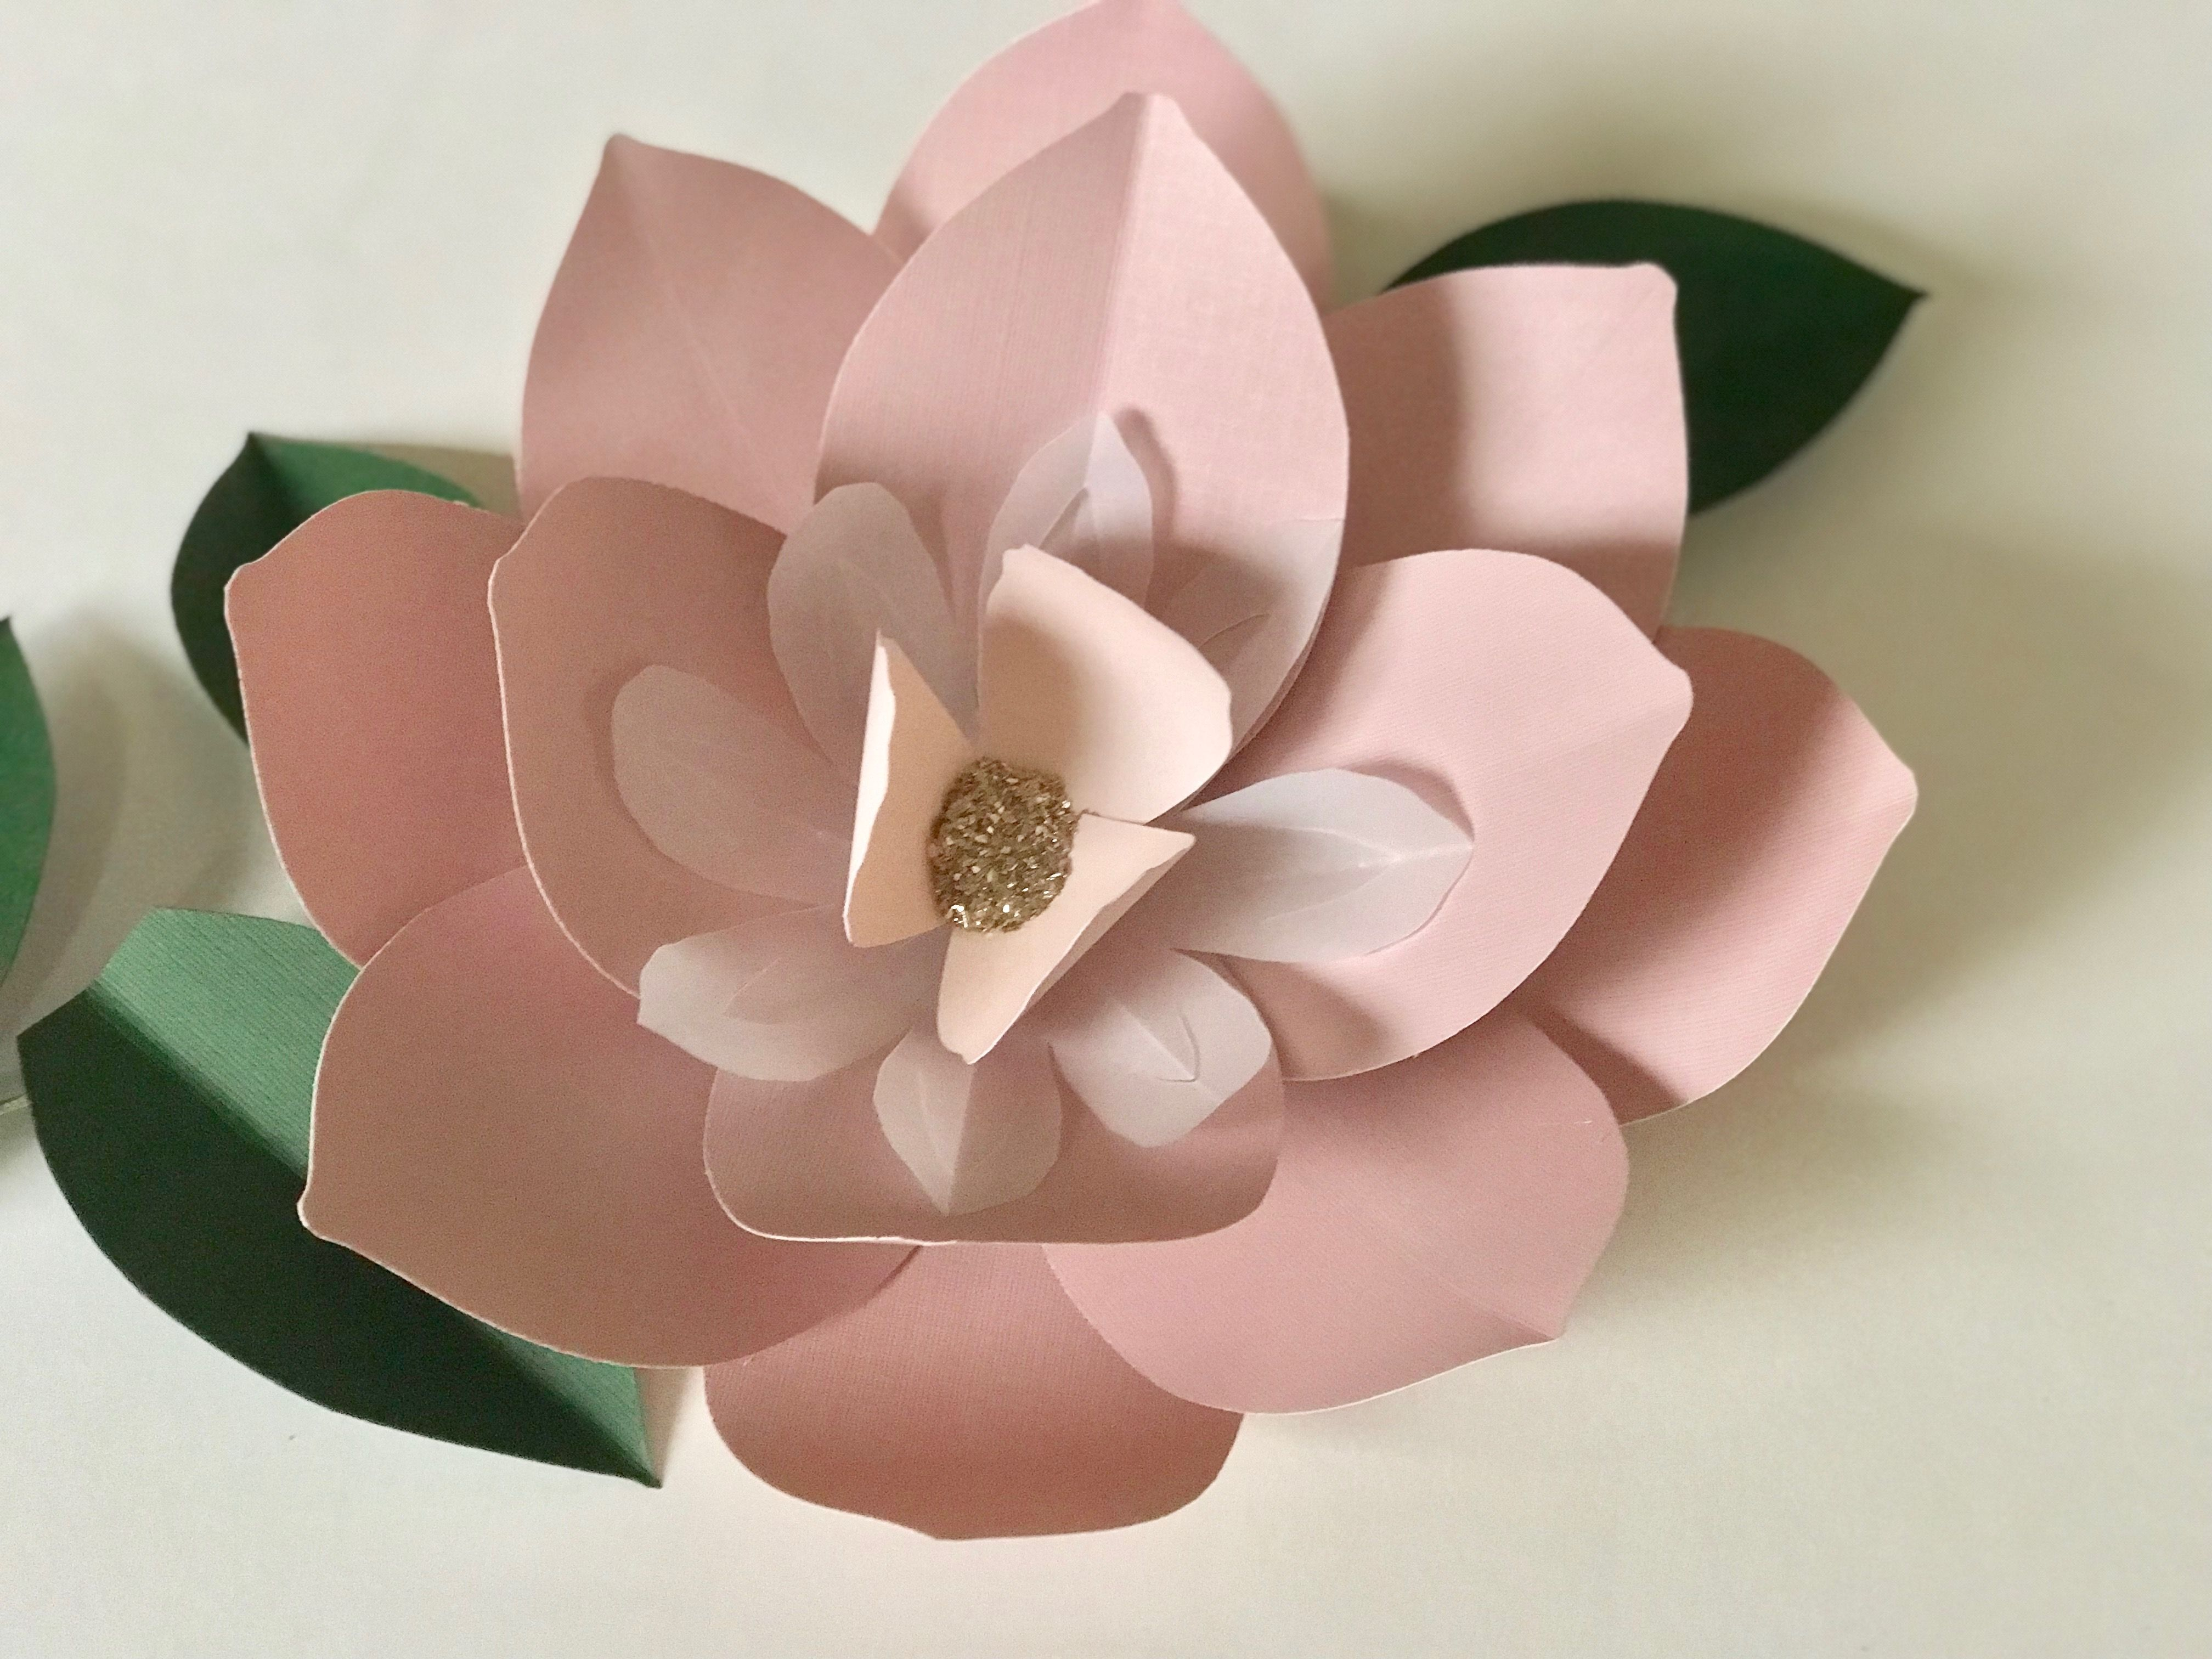 Visit MI PRIMA BELLE on Etsy IG and FB Paper flowers wall decor